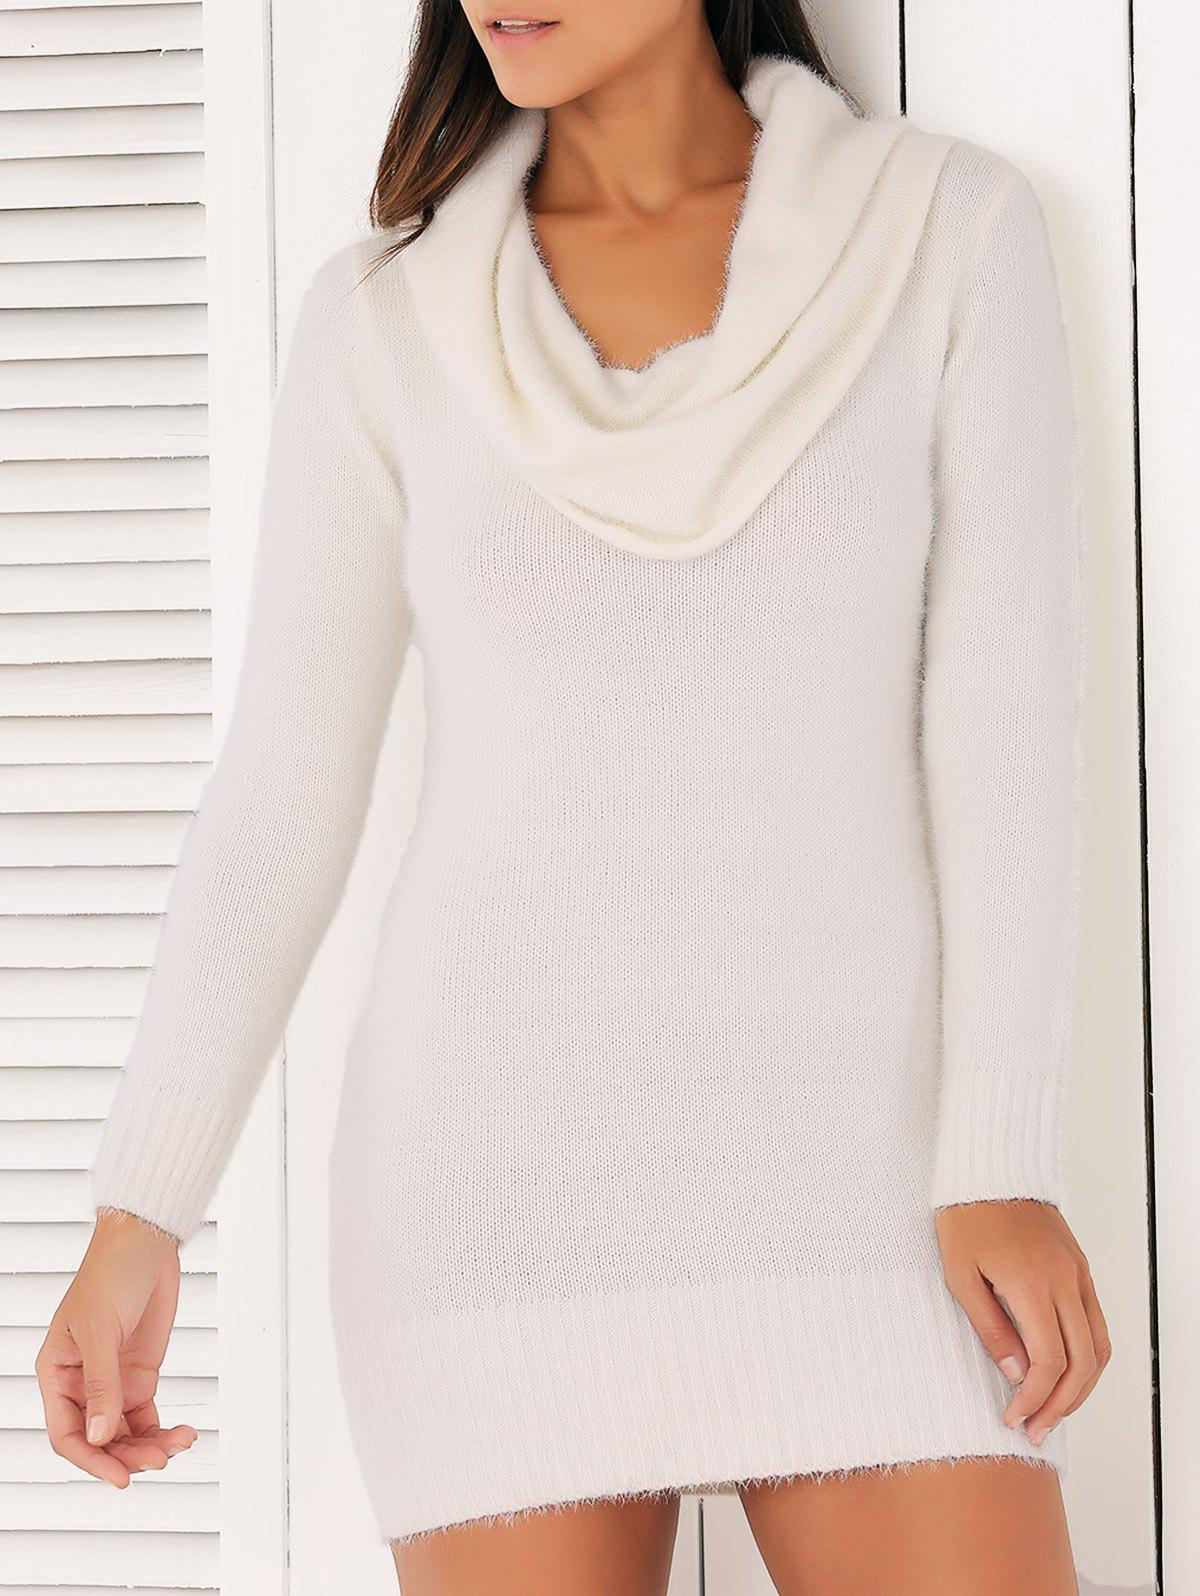 Brief Cowl Collar Long Sleeve Sweater Dress For Women - WHITE ONE SIZE